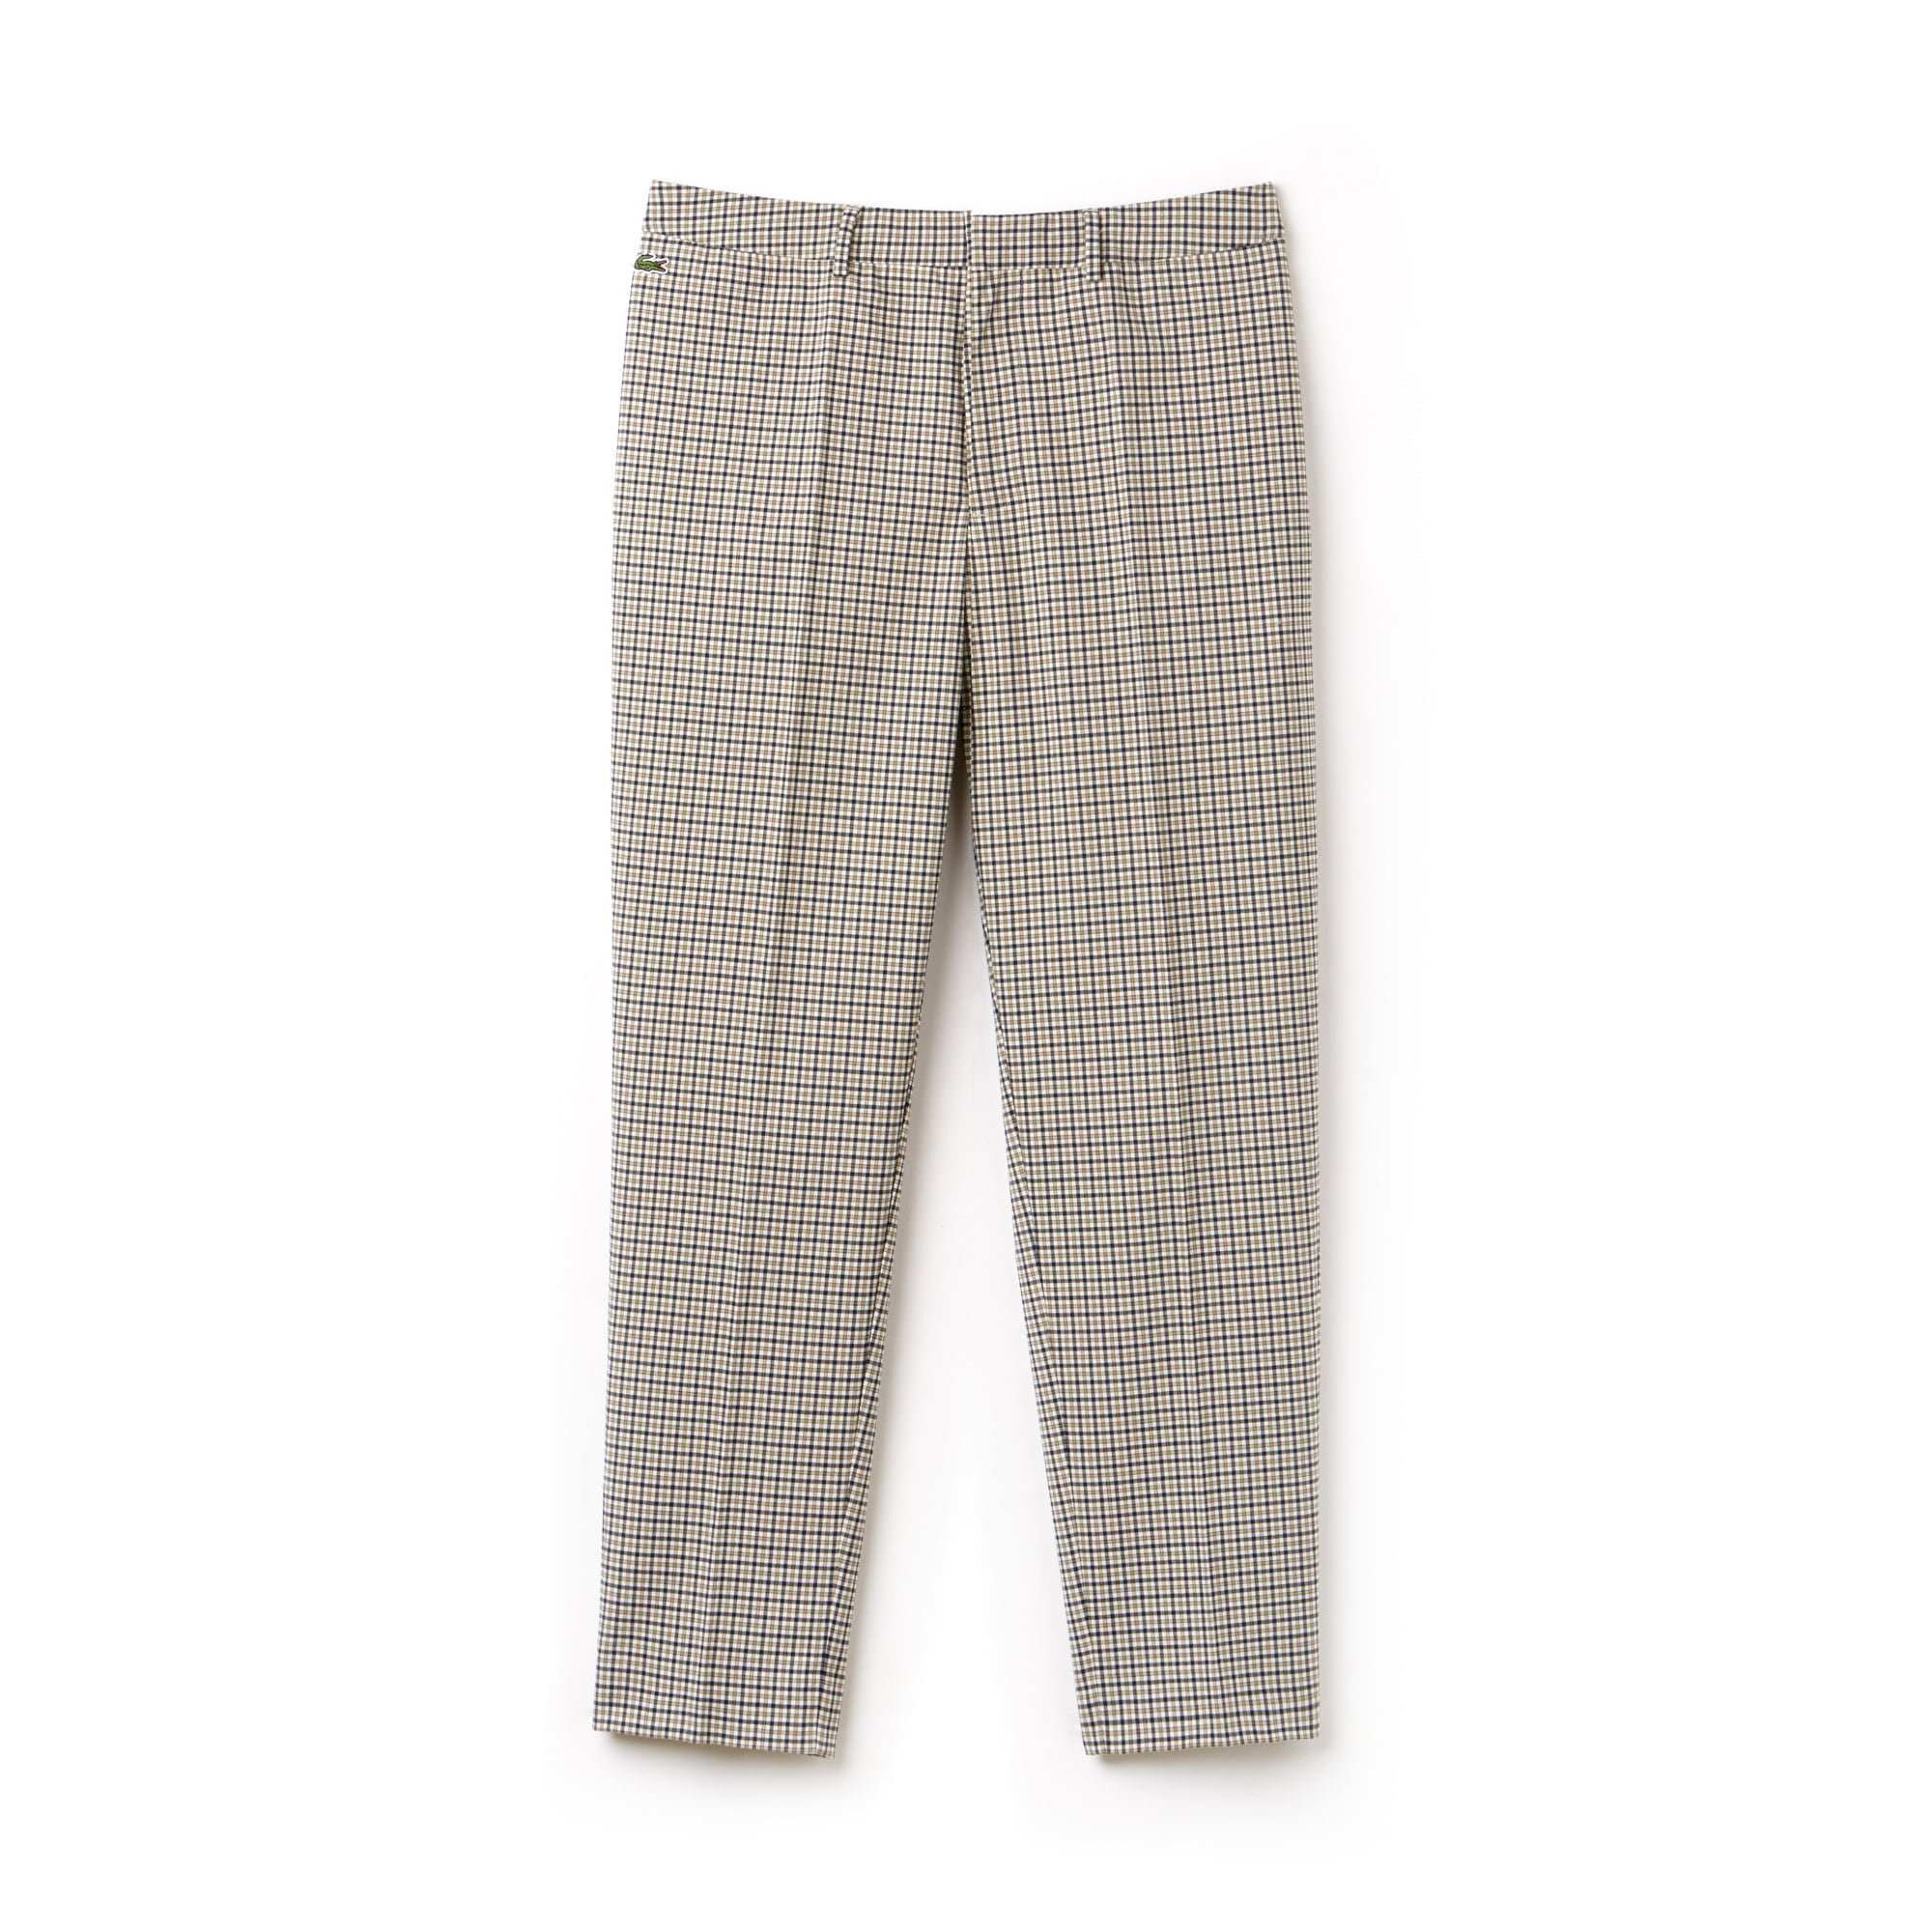 Men's Lacoste LIVE Stretch Check Twill Chino Pants